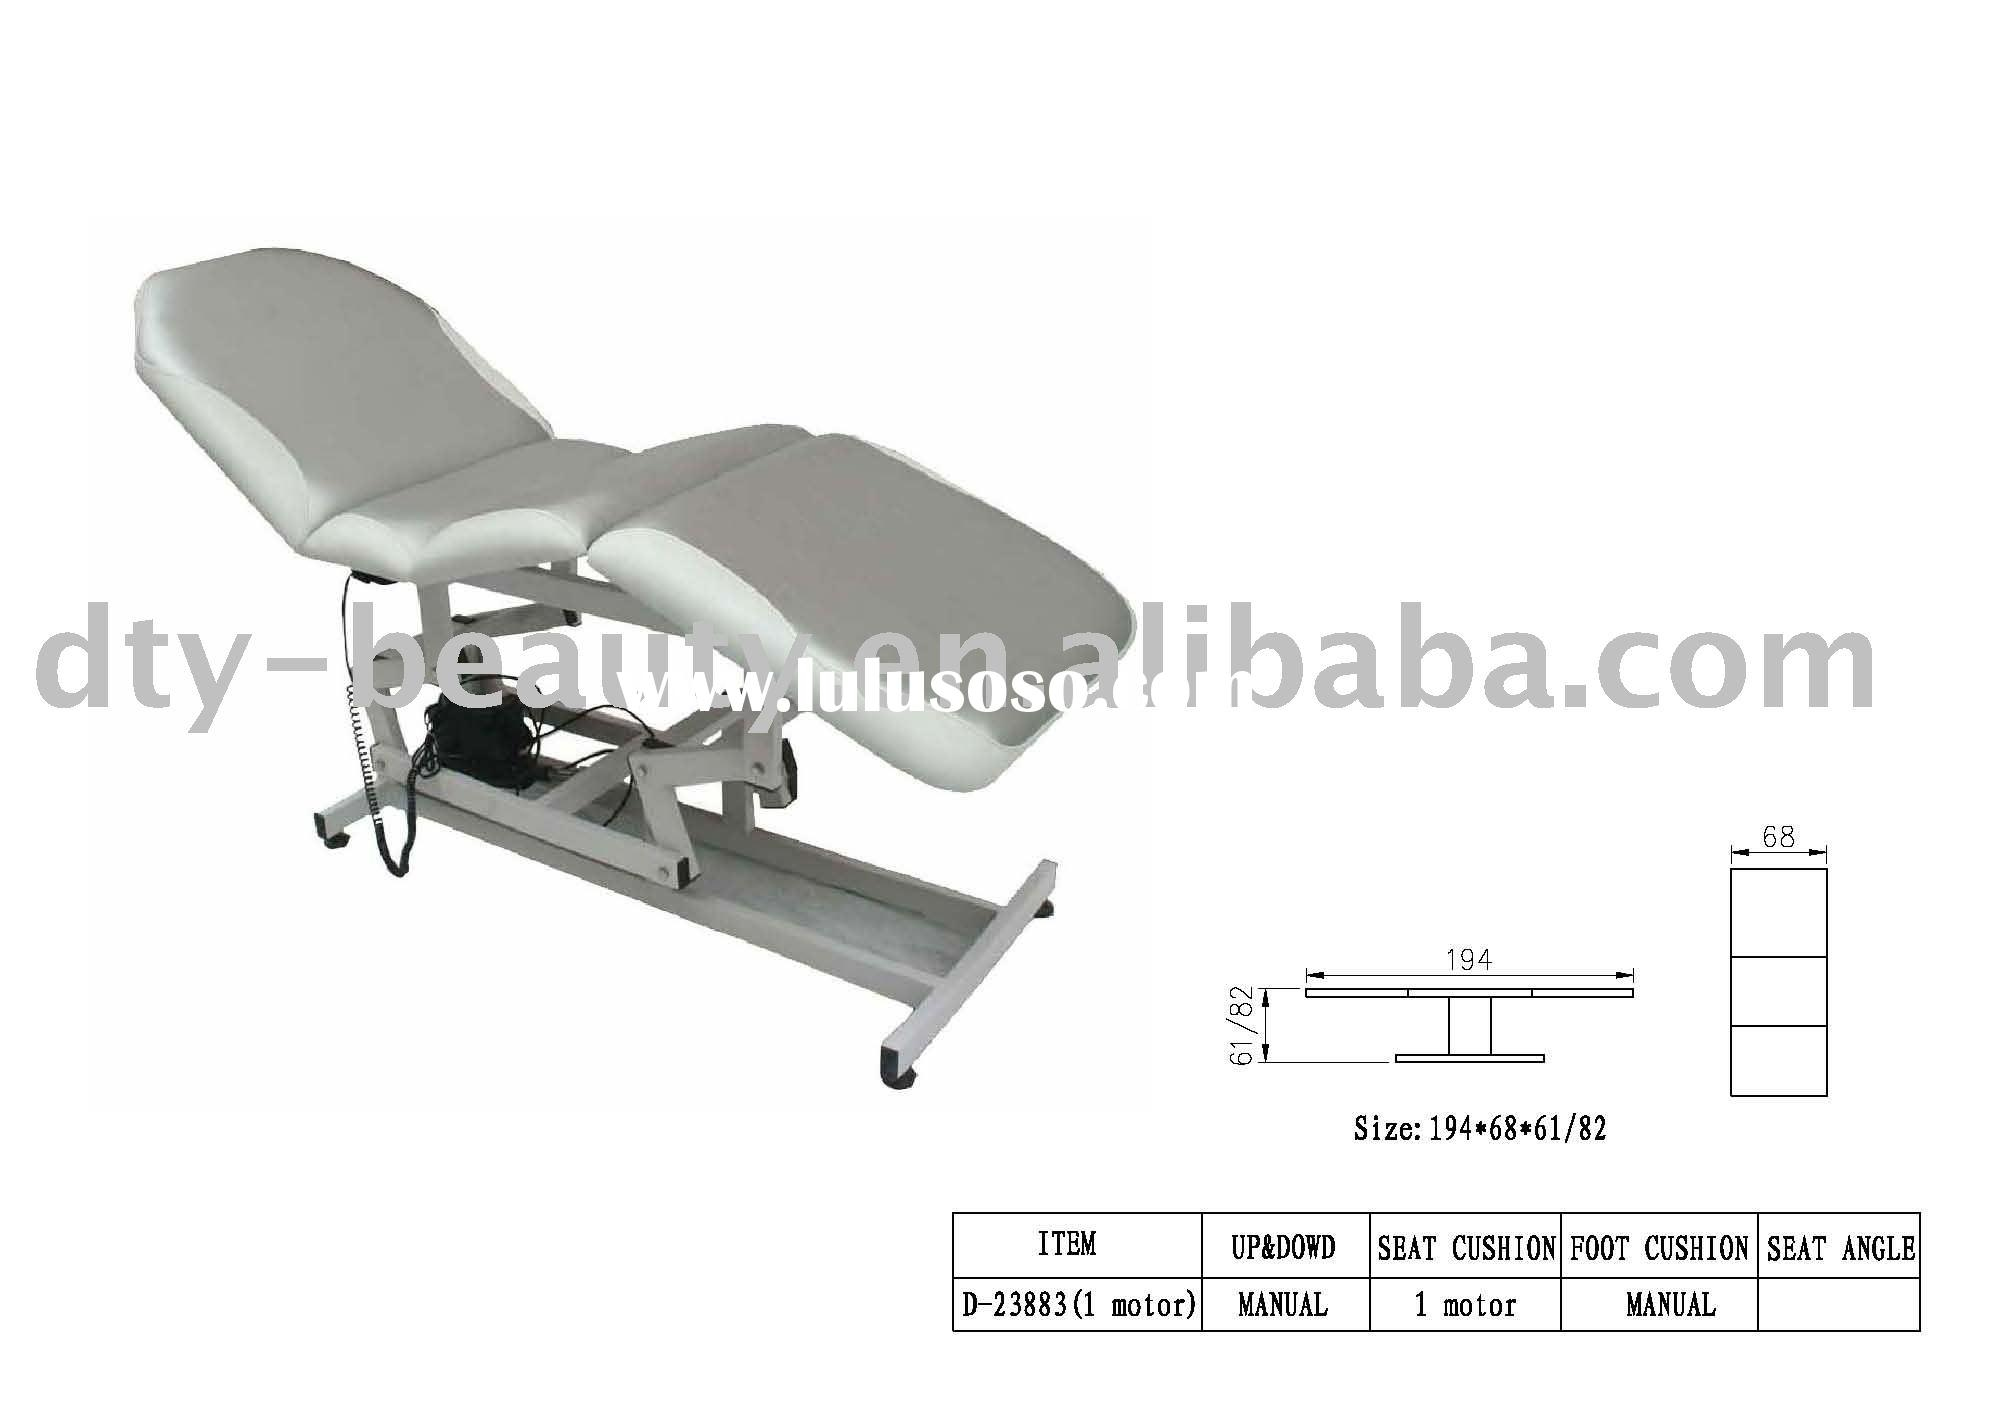 D-23883 Electric Facial Bed,beauty bed,beauty salon equipment